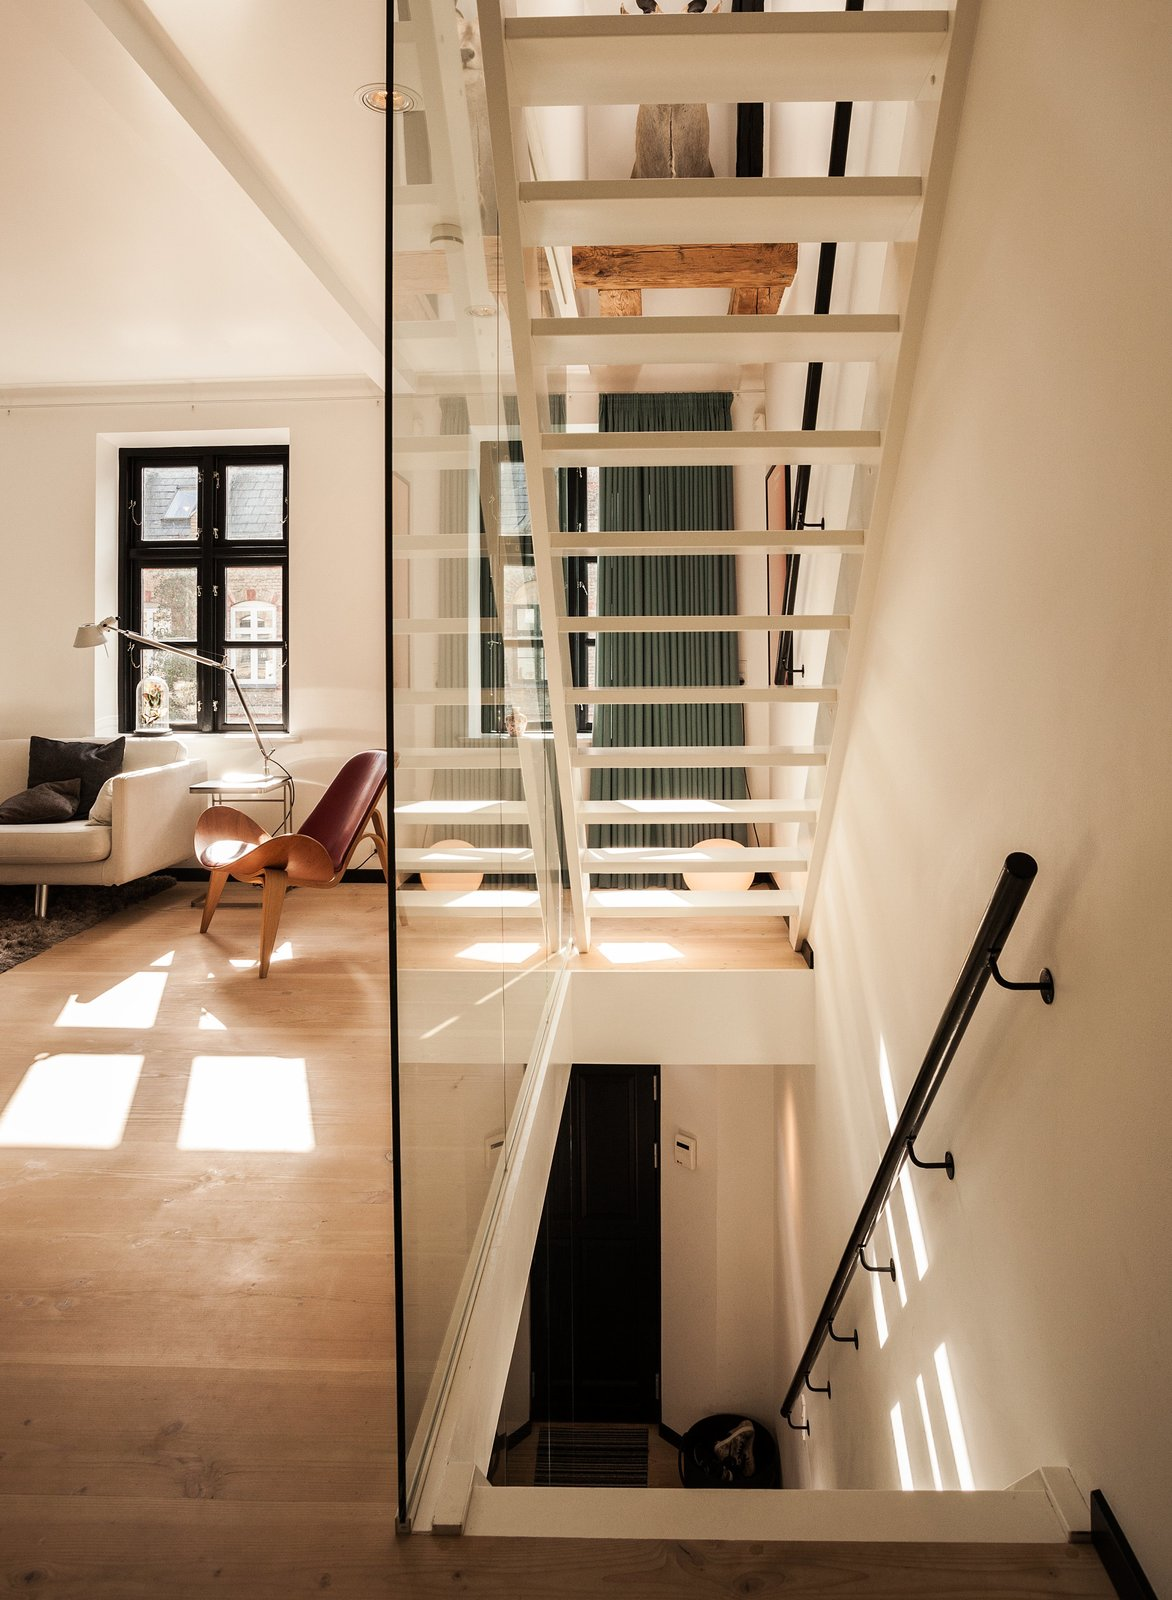 """From the day we got our house, I knew exactly how I wanted it done,"" says Mia Dalgas, who led the renovation of her family's 1880s home in Copenhagen's Potato Rows district. One of the biggest transformations was the addition of a glass-enclosed lacquered wood staircase."